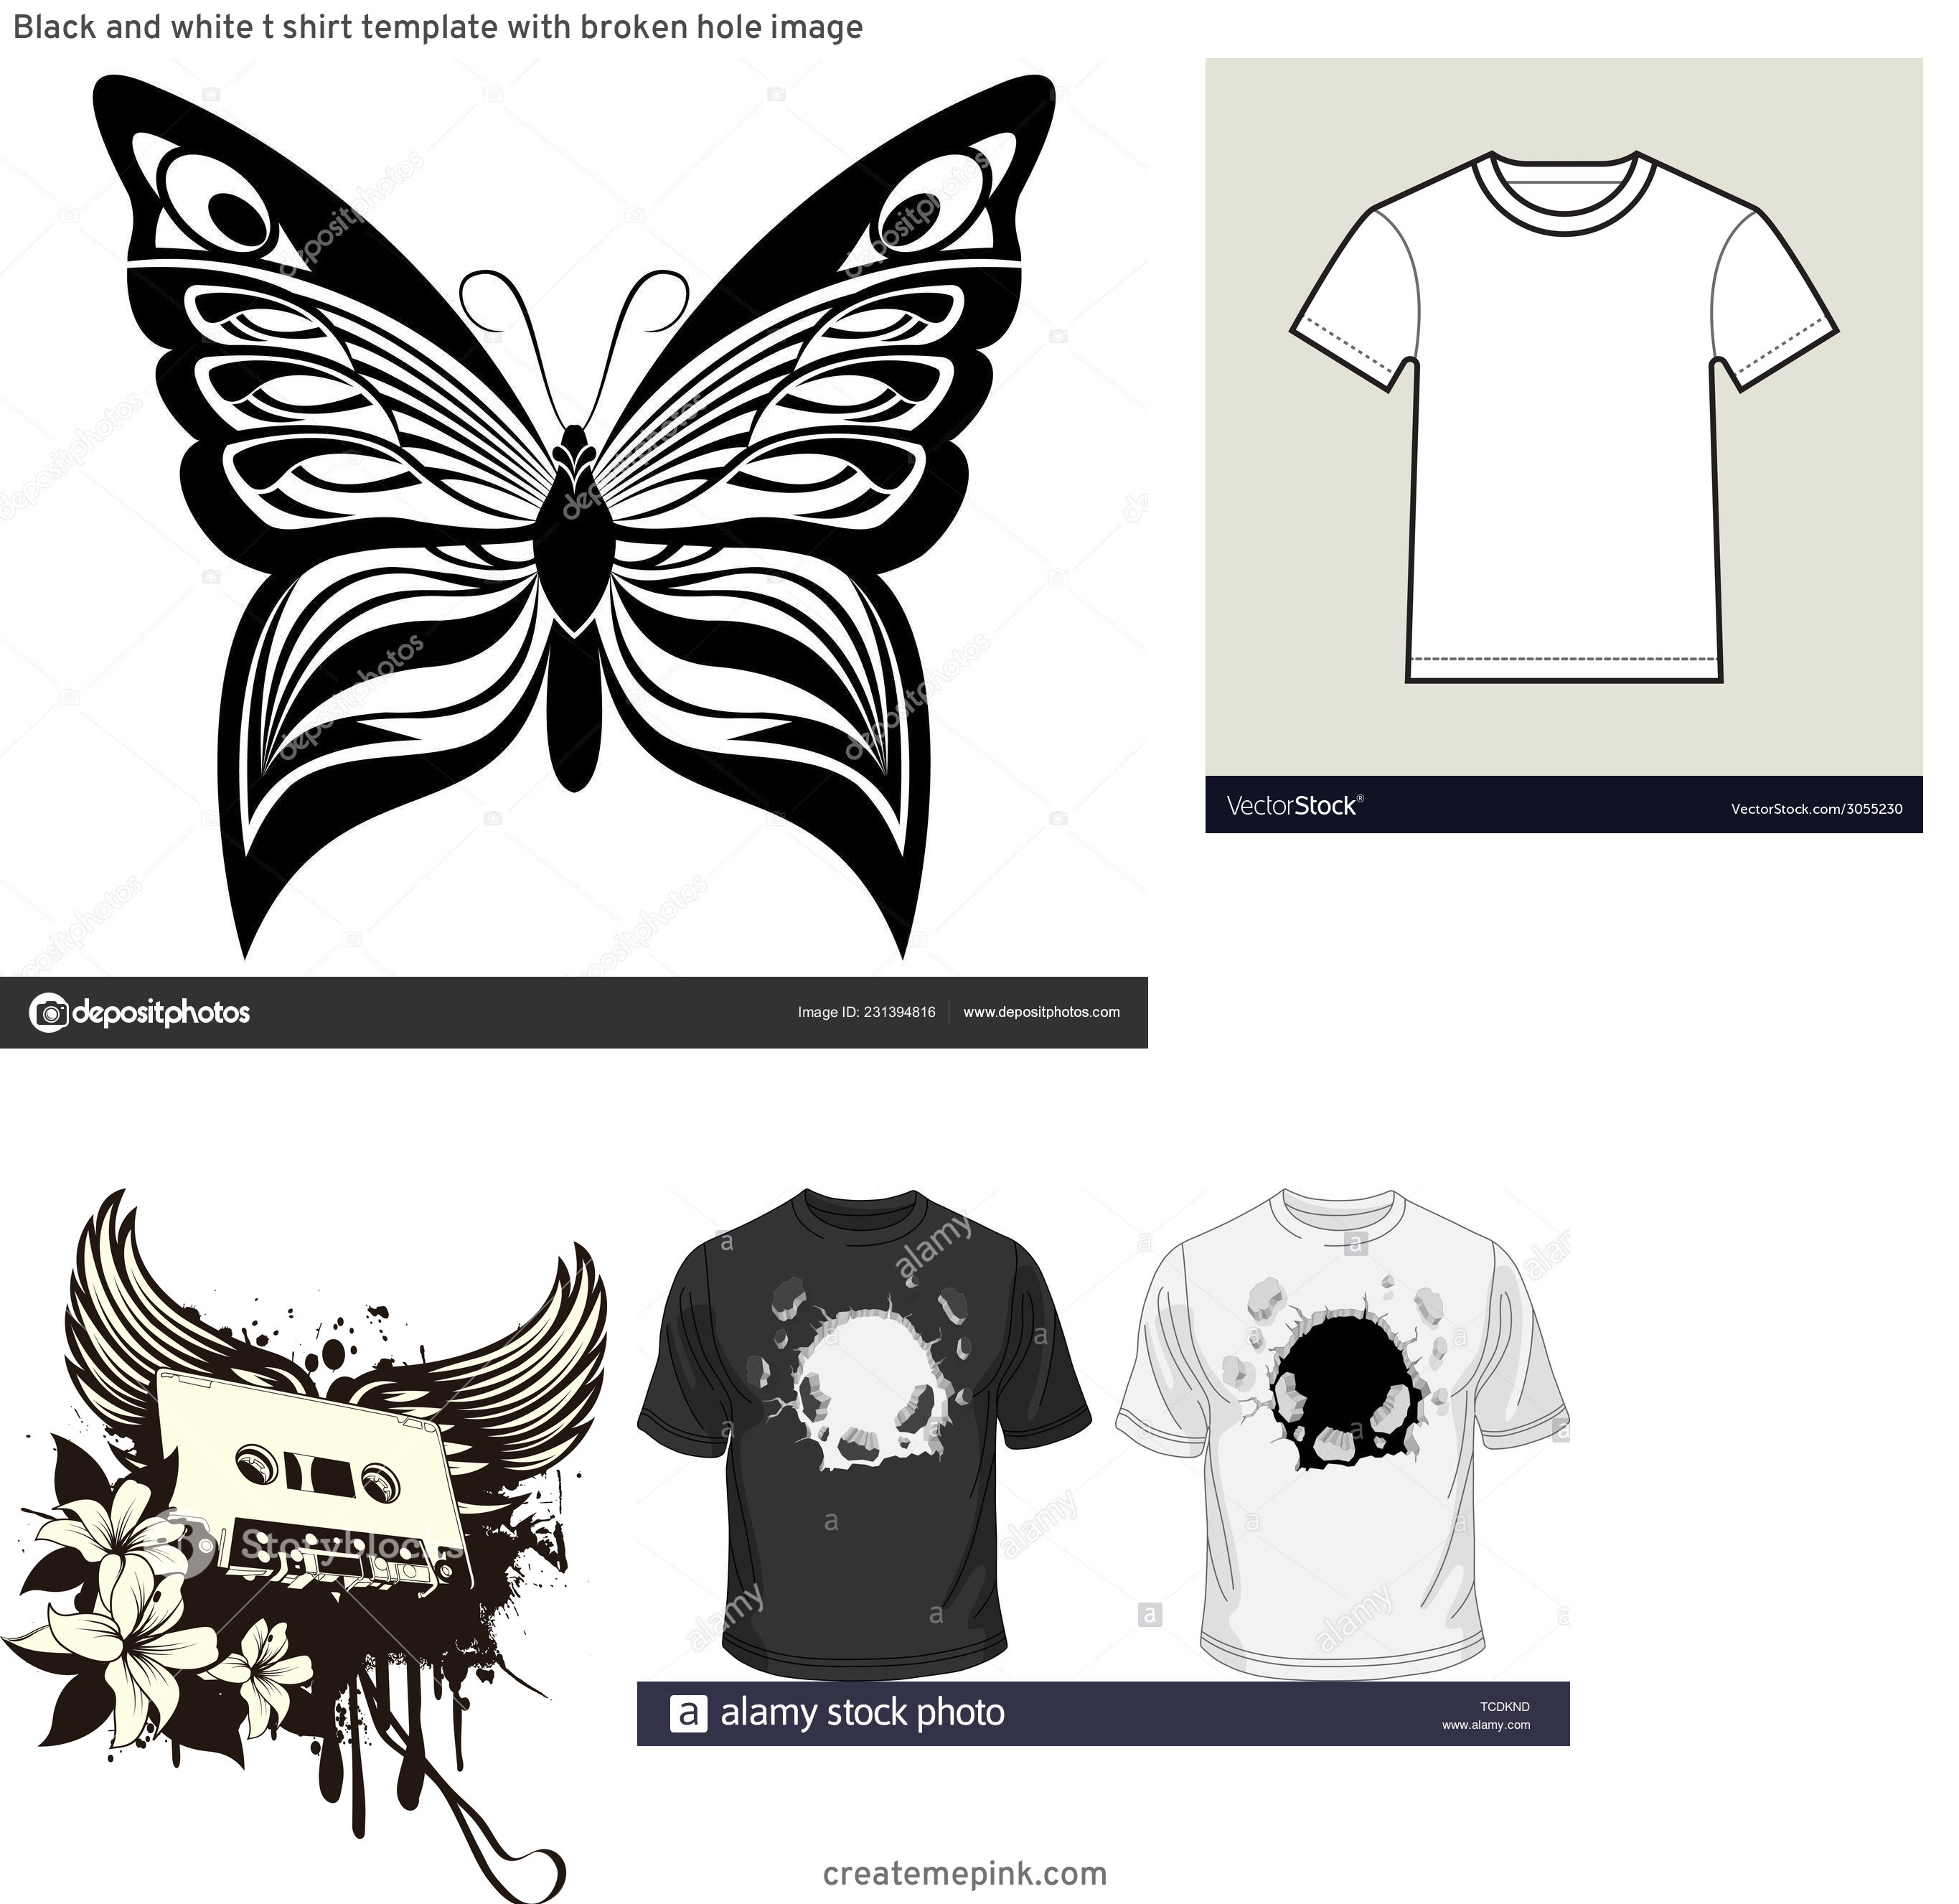 T-Shirt Vector Art: Black And White T Shirt Template With Broken Hole Image